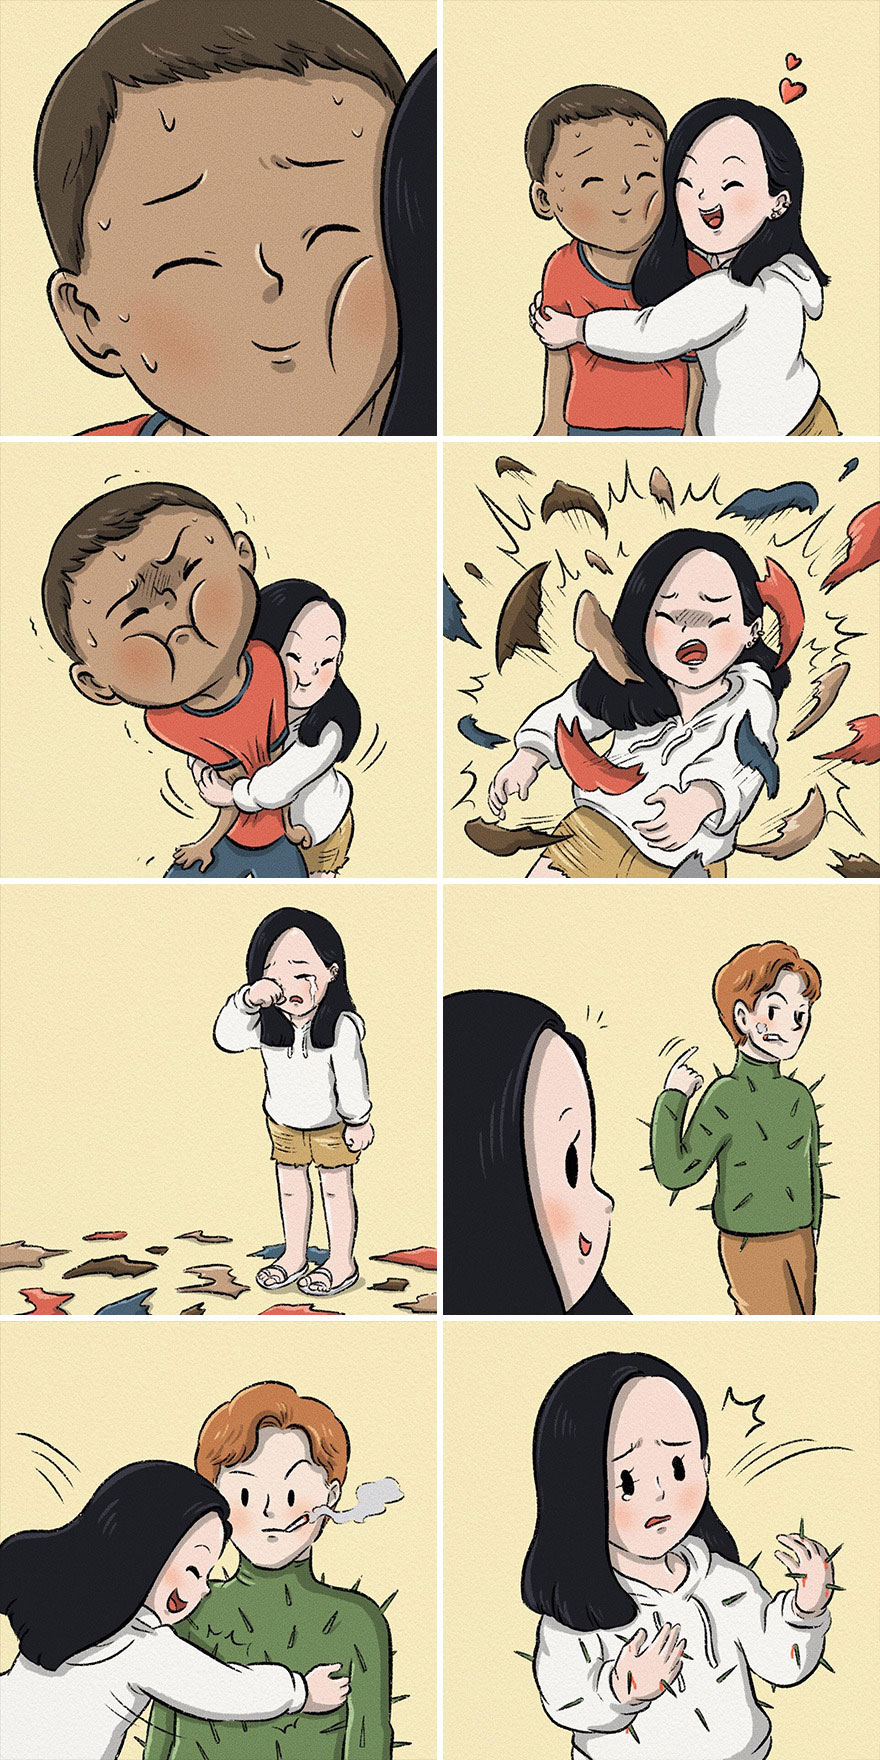 Thai Illustrator Makes Colorful Comics That Take Unexpected Turns And Here Are 18 Of The Best Ones